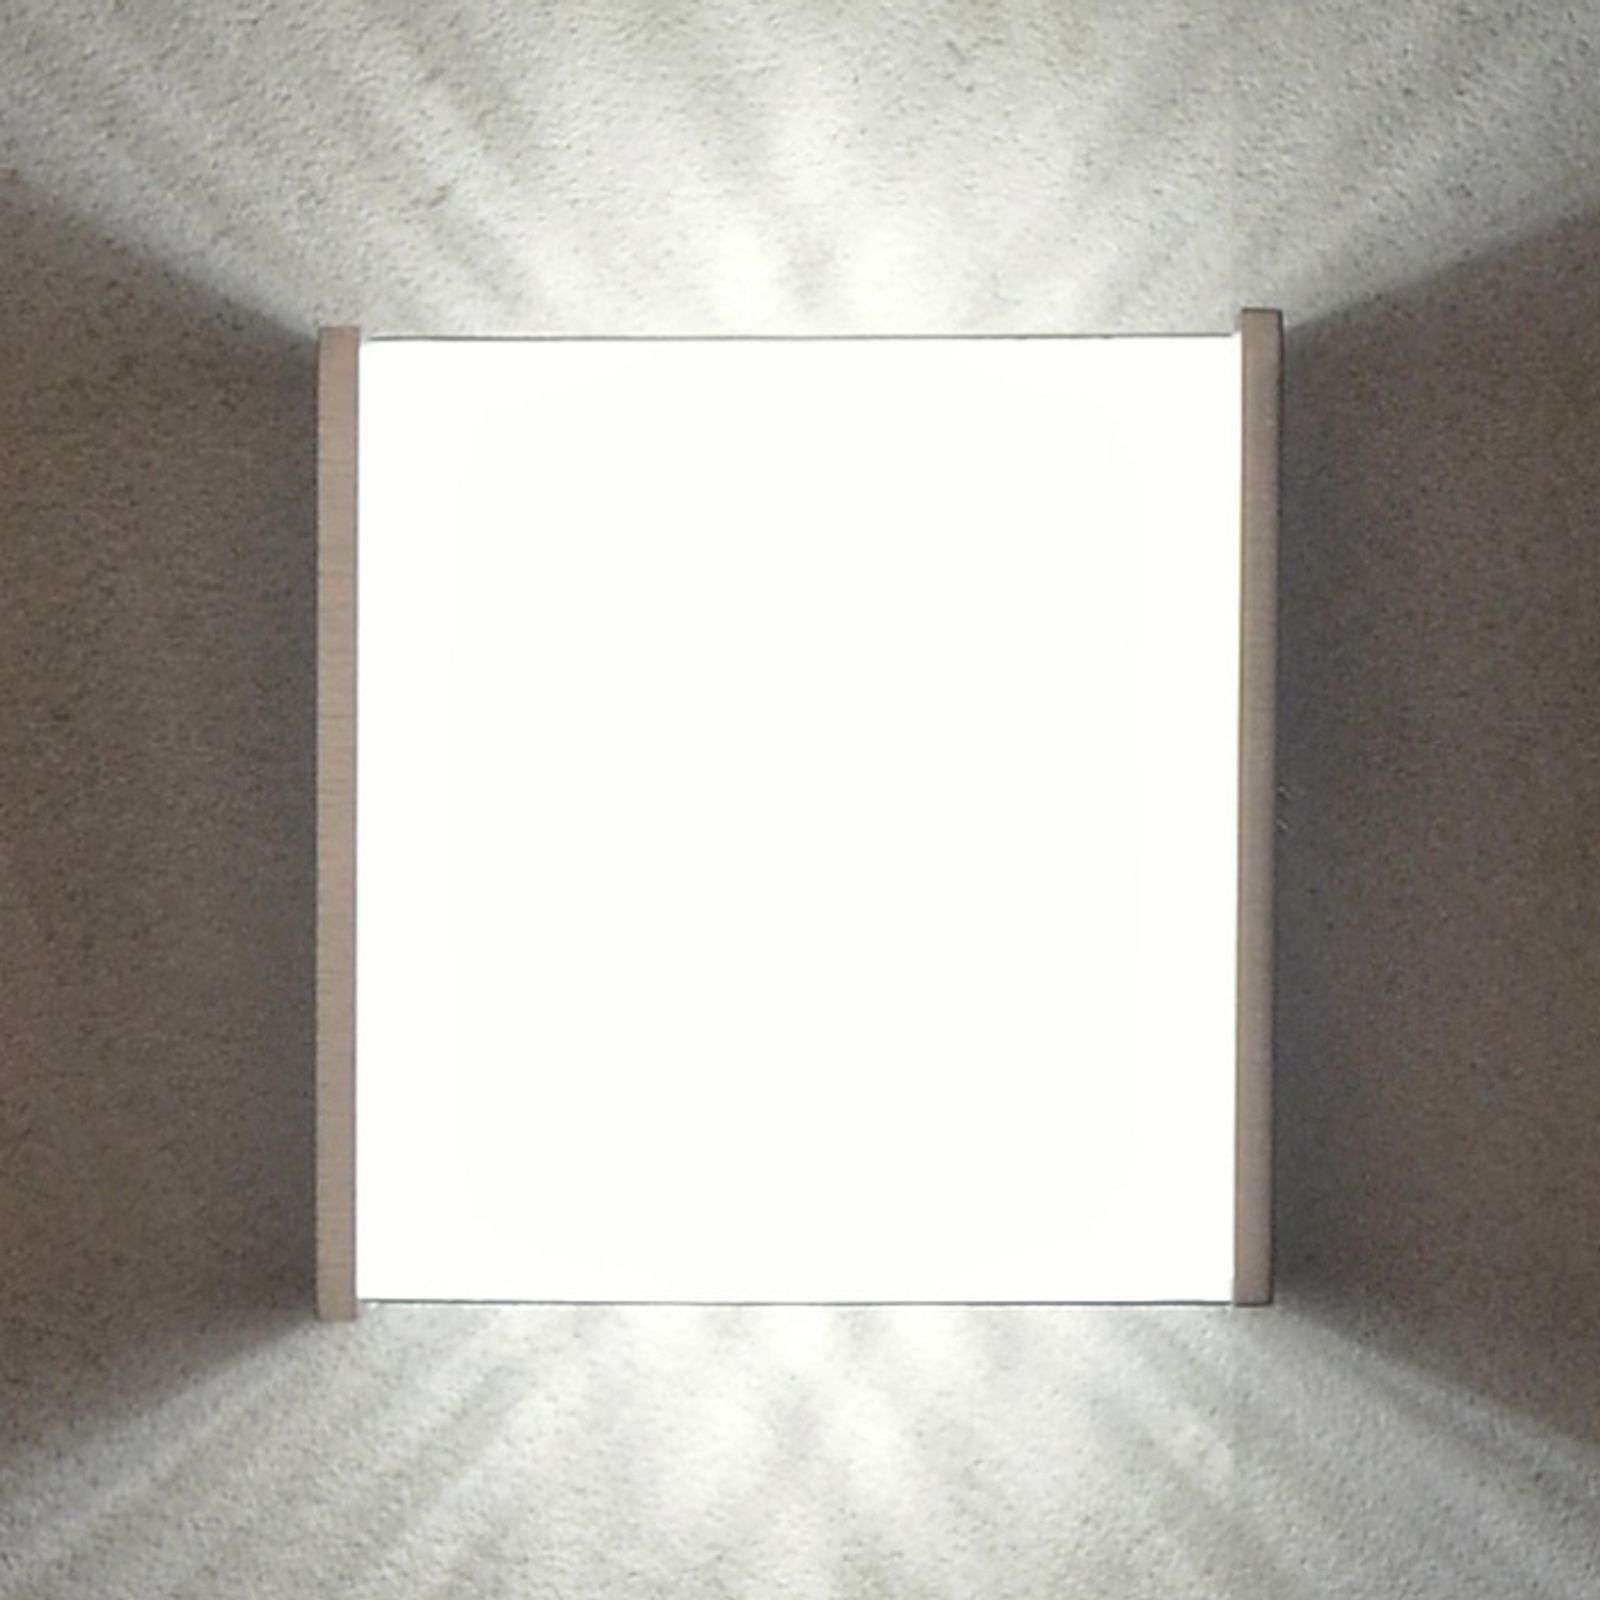 Effectvolle LED wandlamp Box